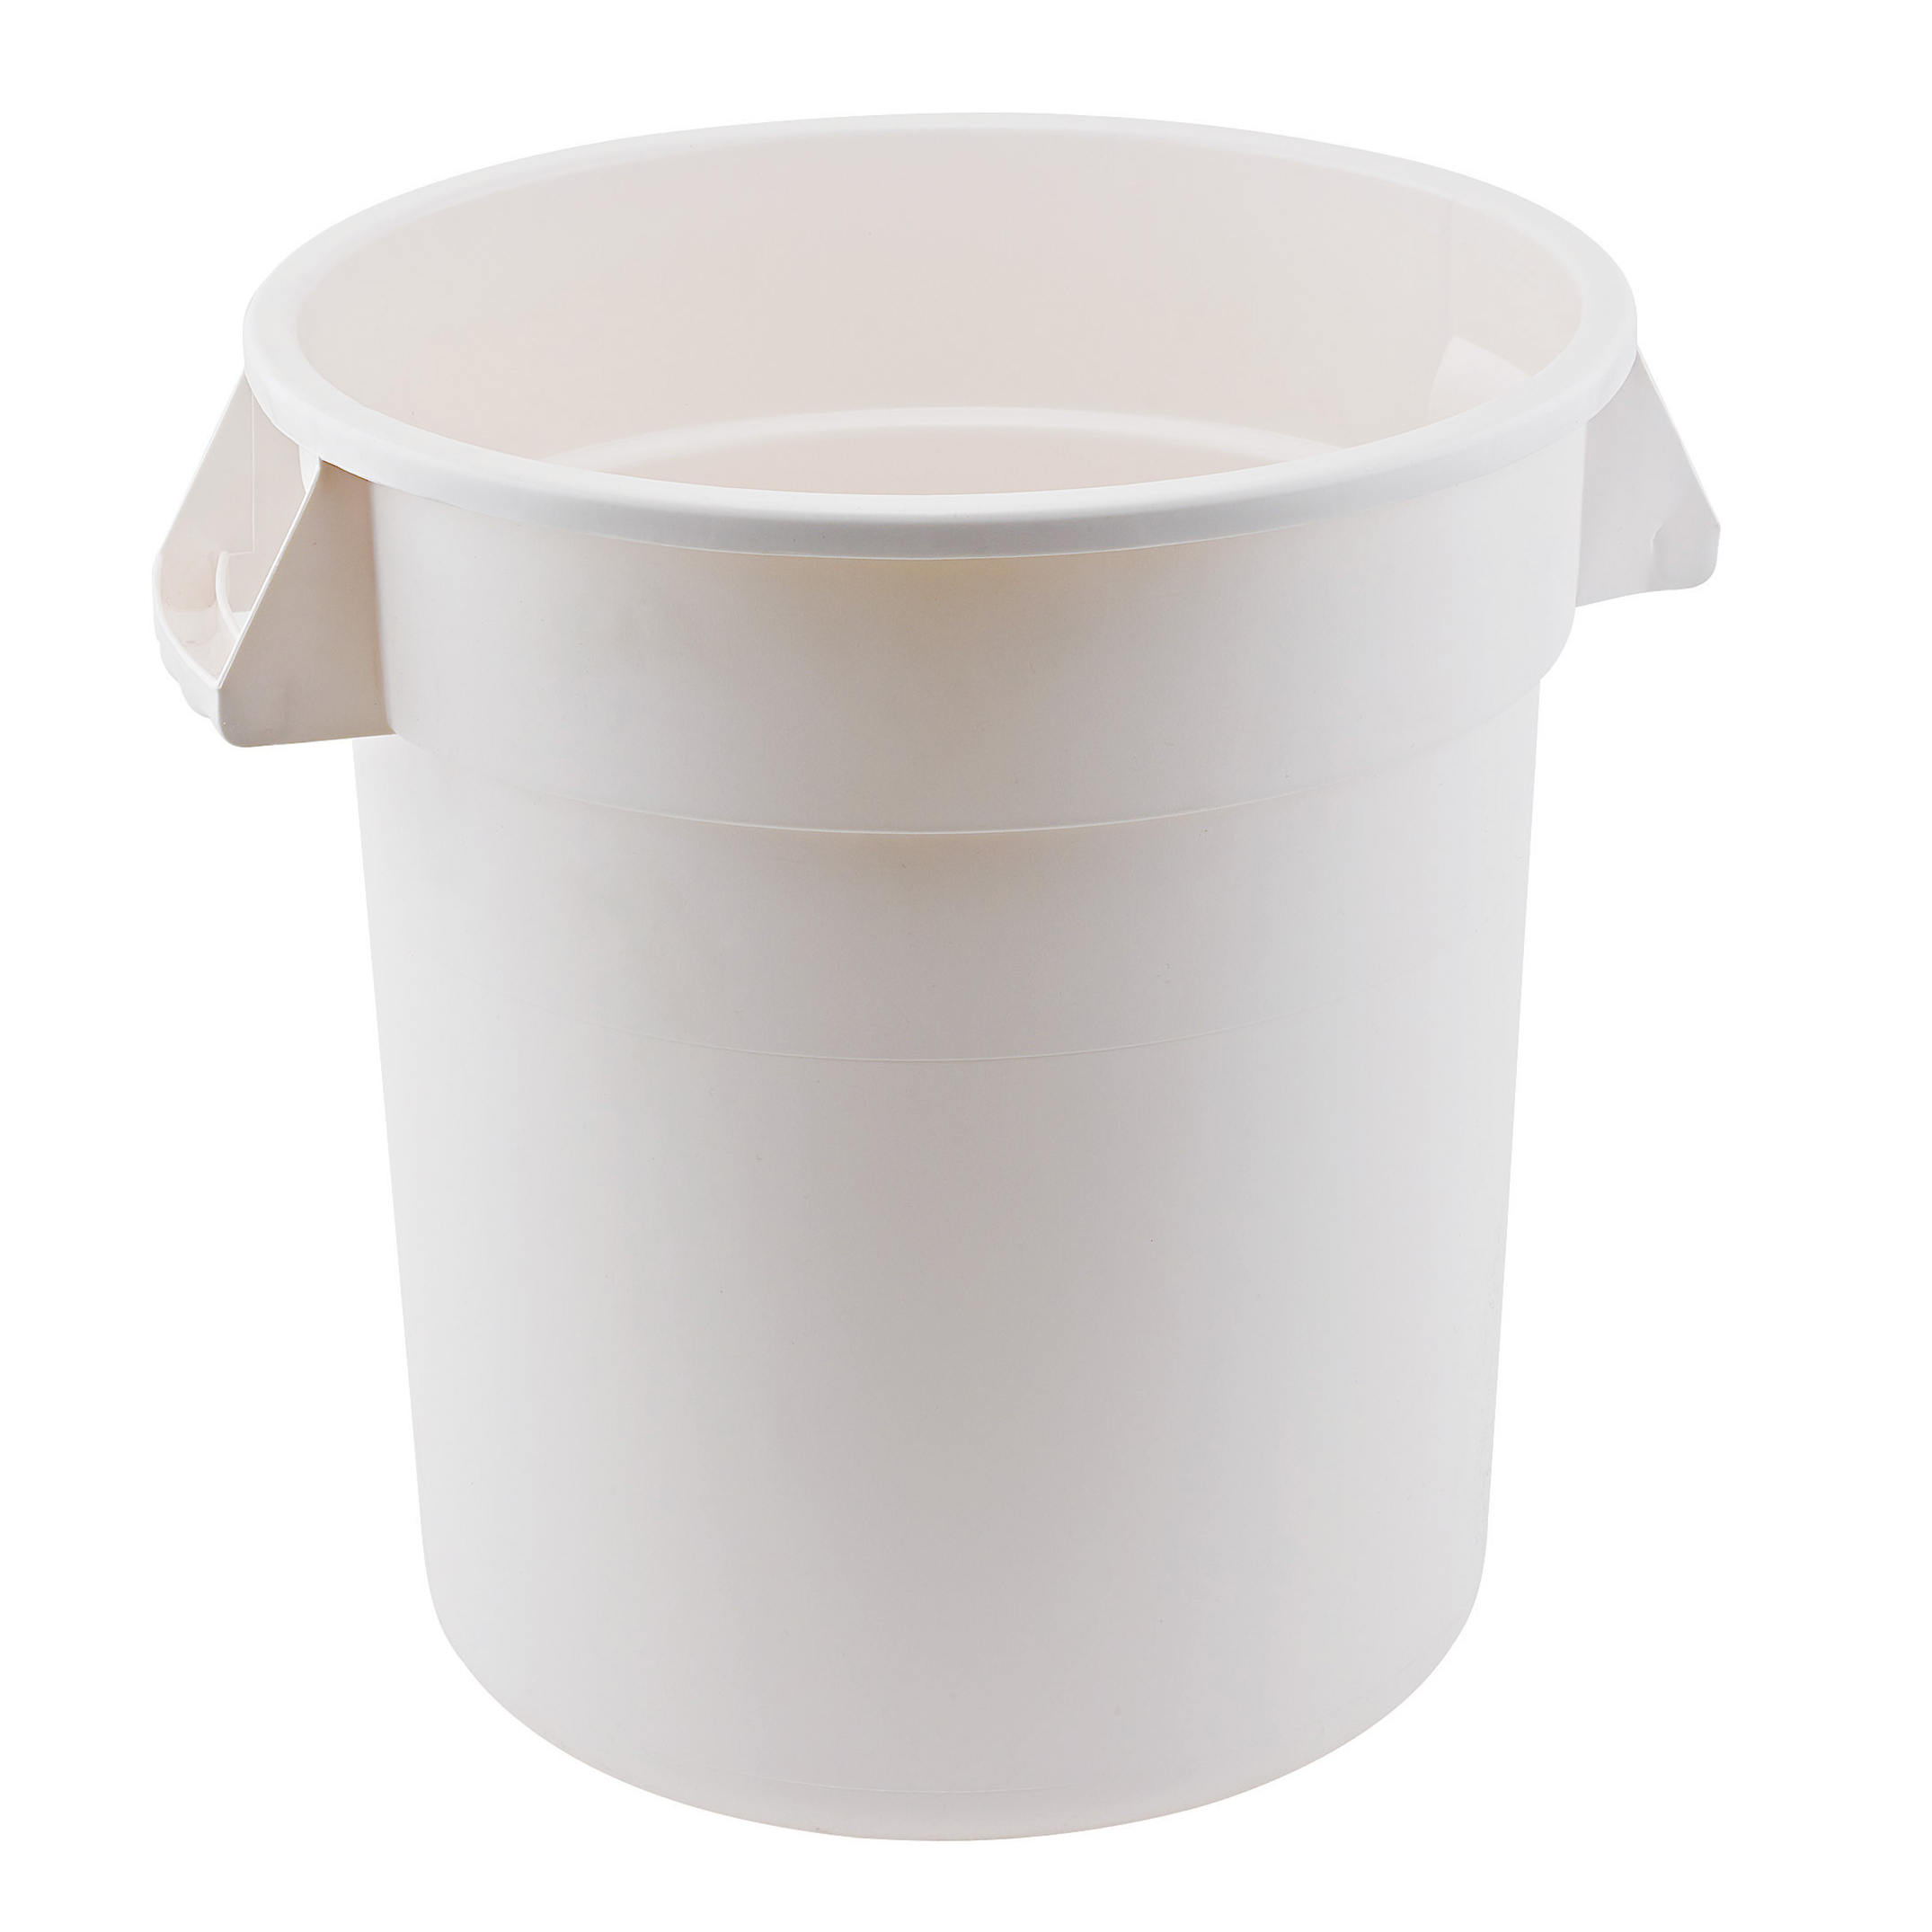 Winco FCW-20 trash can / container, commercial